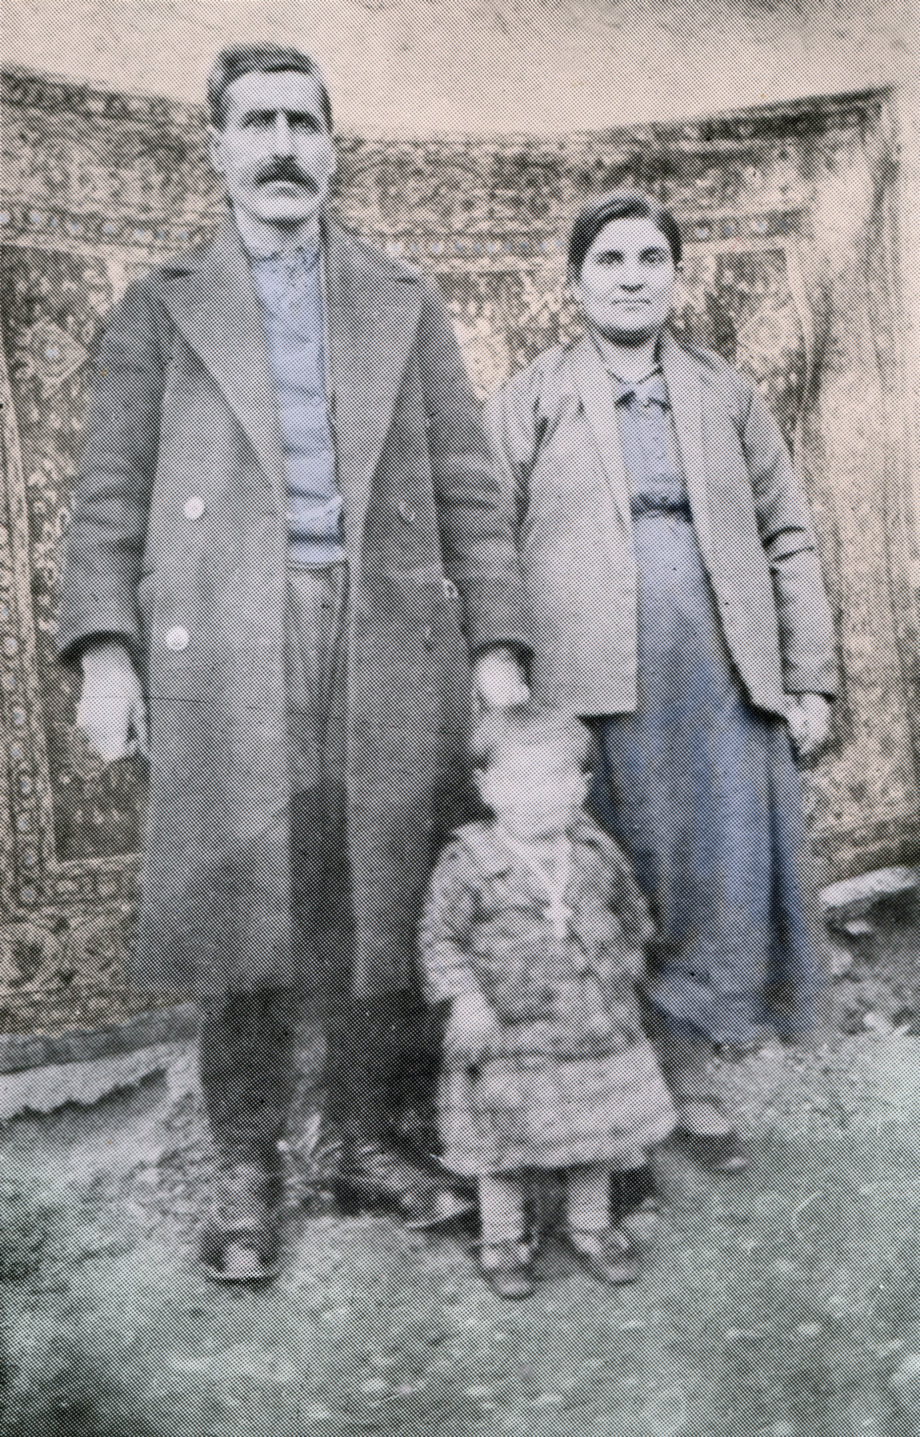 Melkon Nazarian (from Agn), his wife Nazeni, and their son, Avedis Nazarian